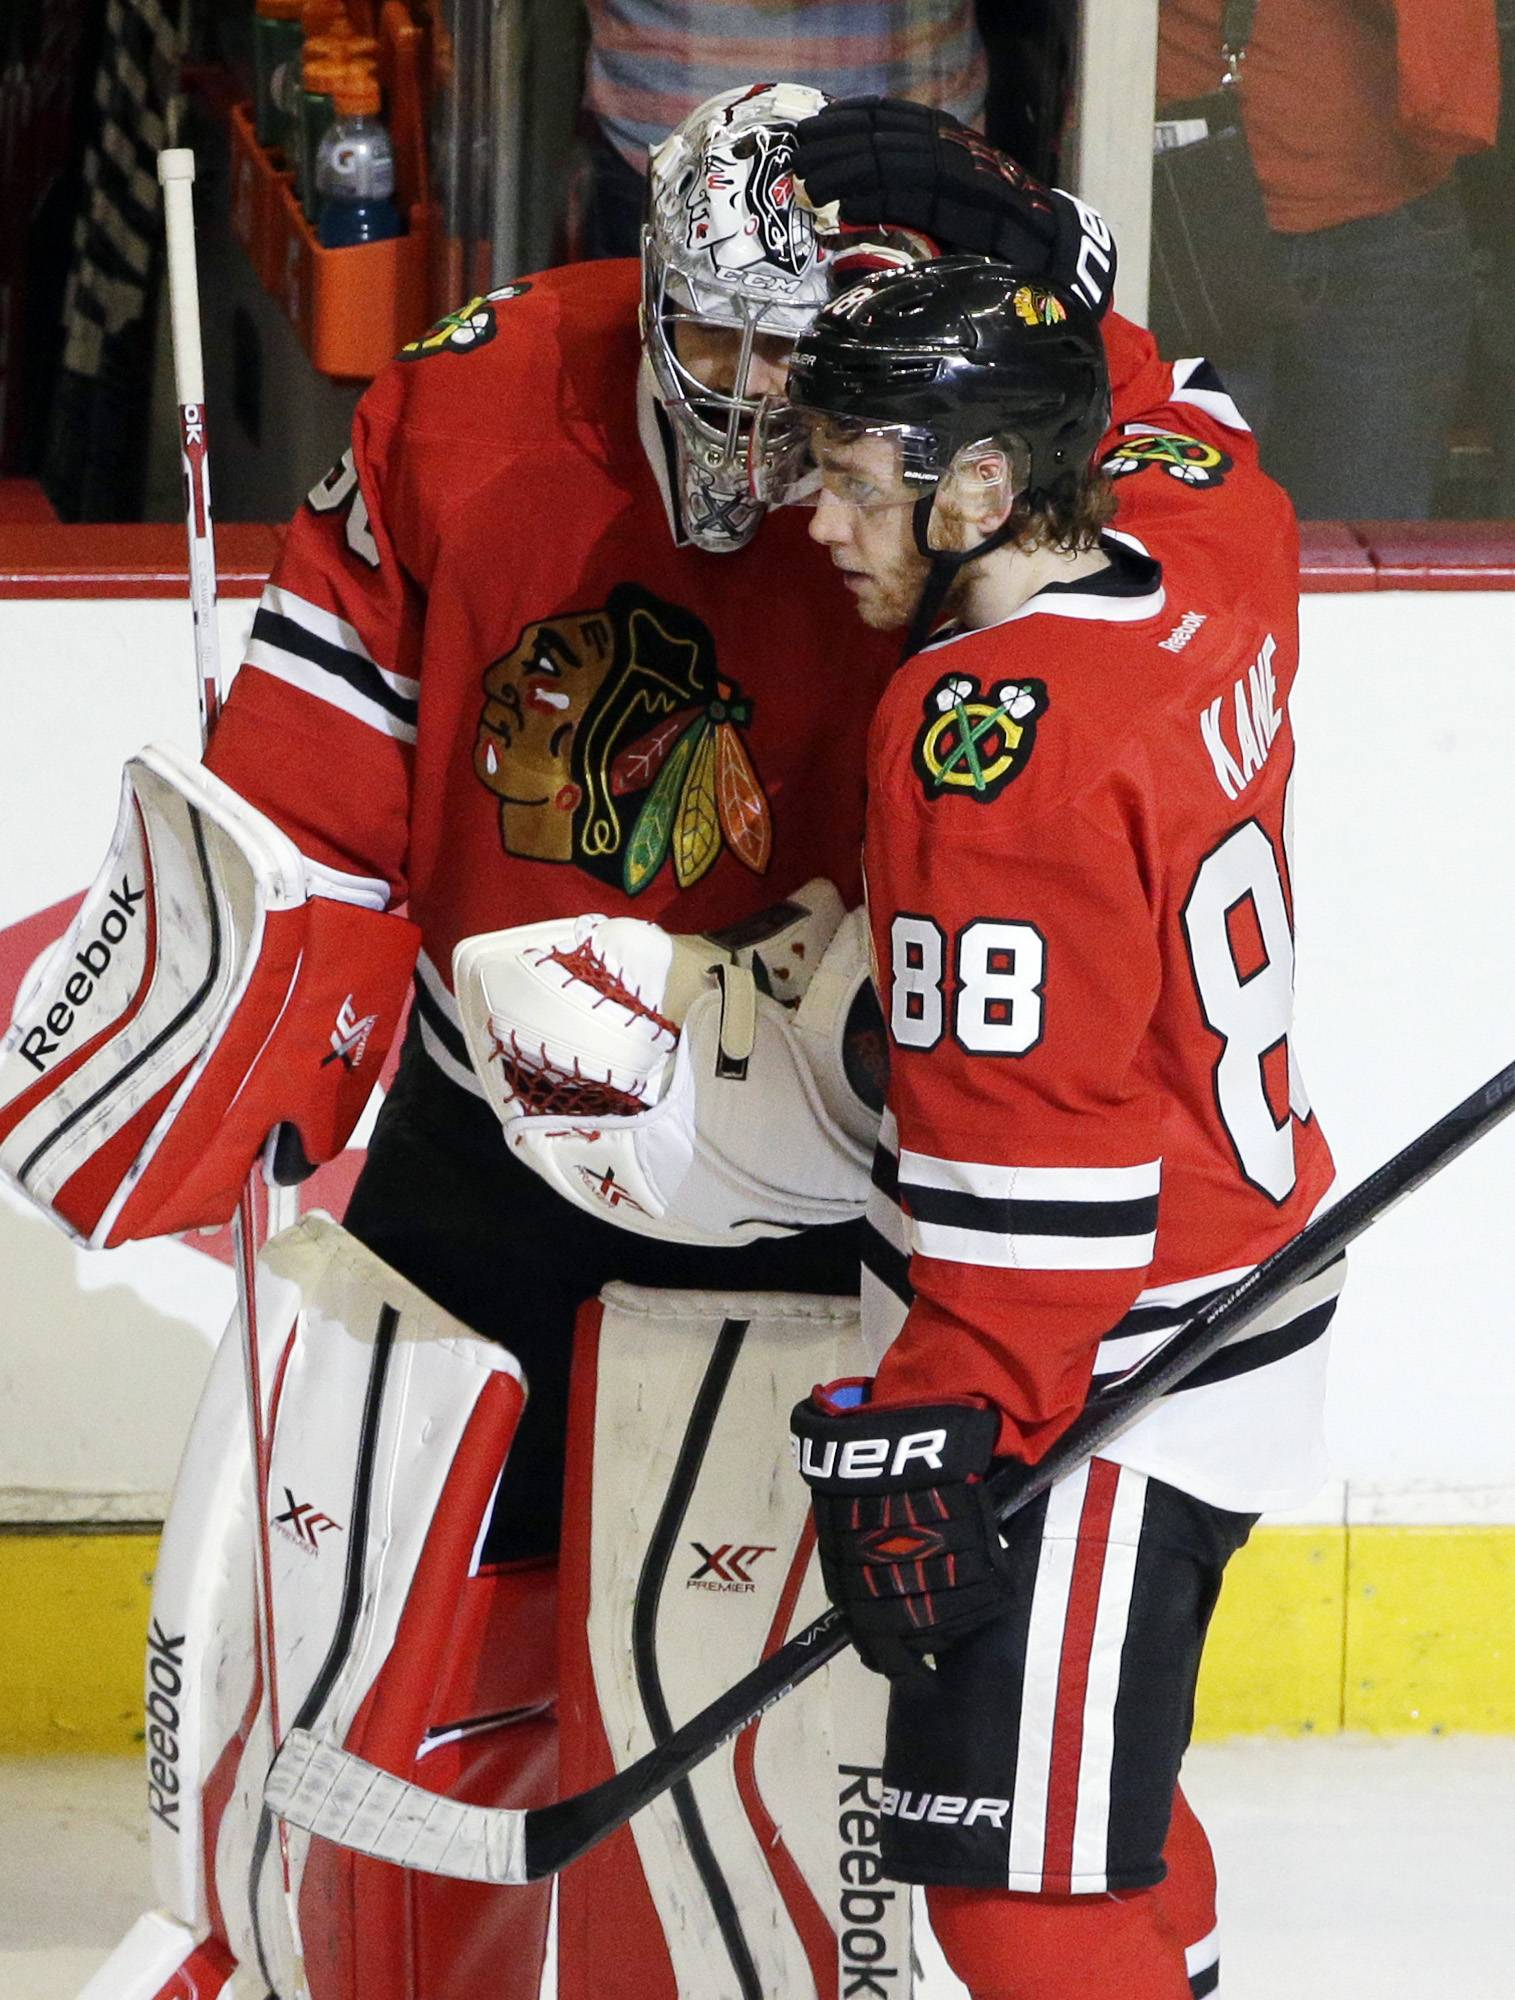 Blackhawks goalie Corey Crawford celebrates with Patrick Kane after Sunday's Game 5 victory over the Wild. Both have done more than their share to get the Hawks into the Western Conference finals.